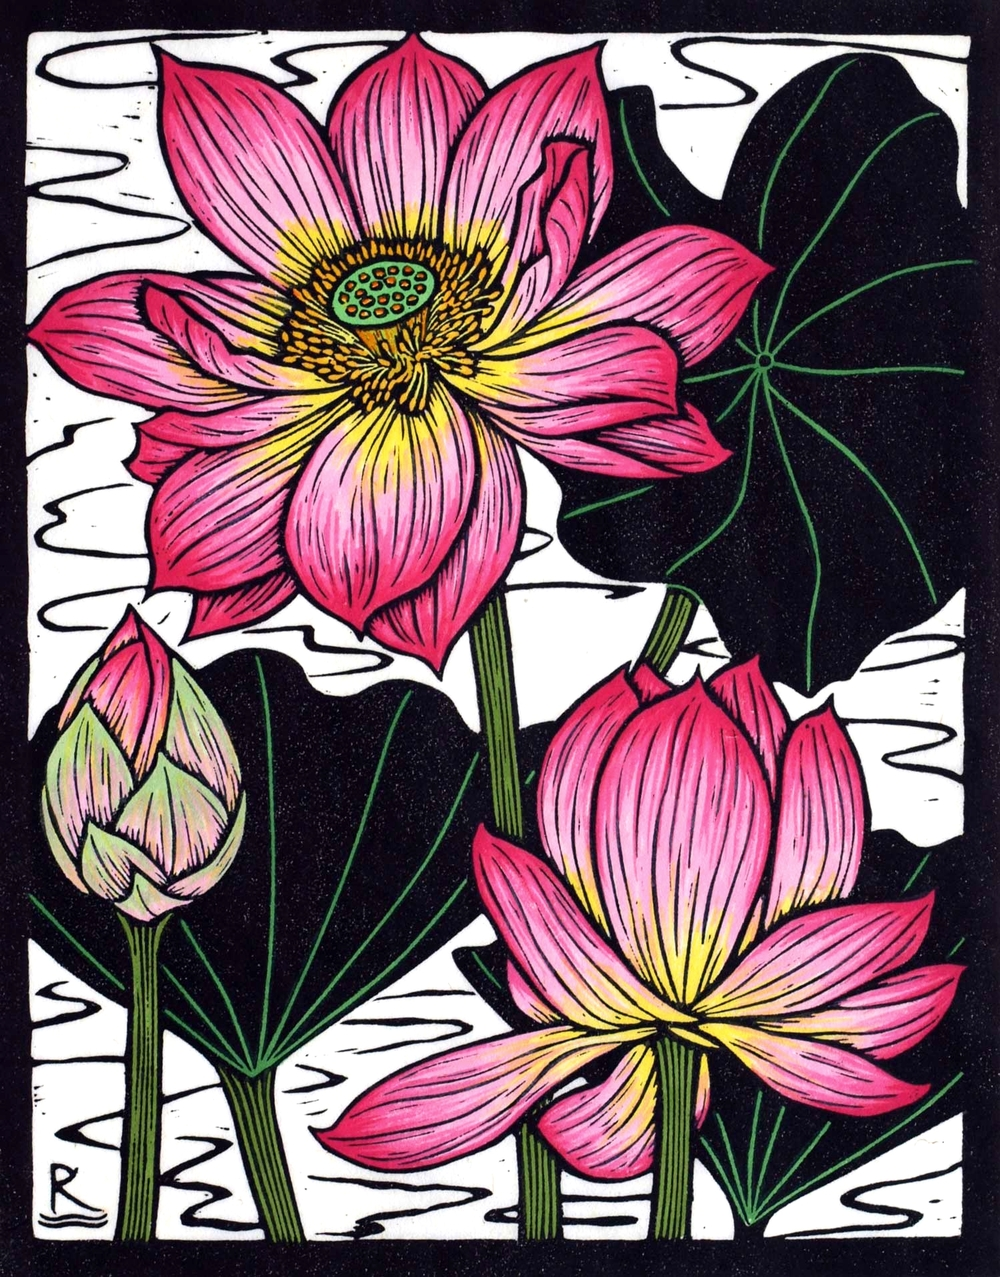 SACRED LOTUS I 28 X 22 CM    EDITION OF 50 HAND COLOURED LINOCUT ON HANDMADE JAPANESE PAPER $550